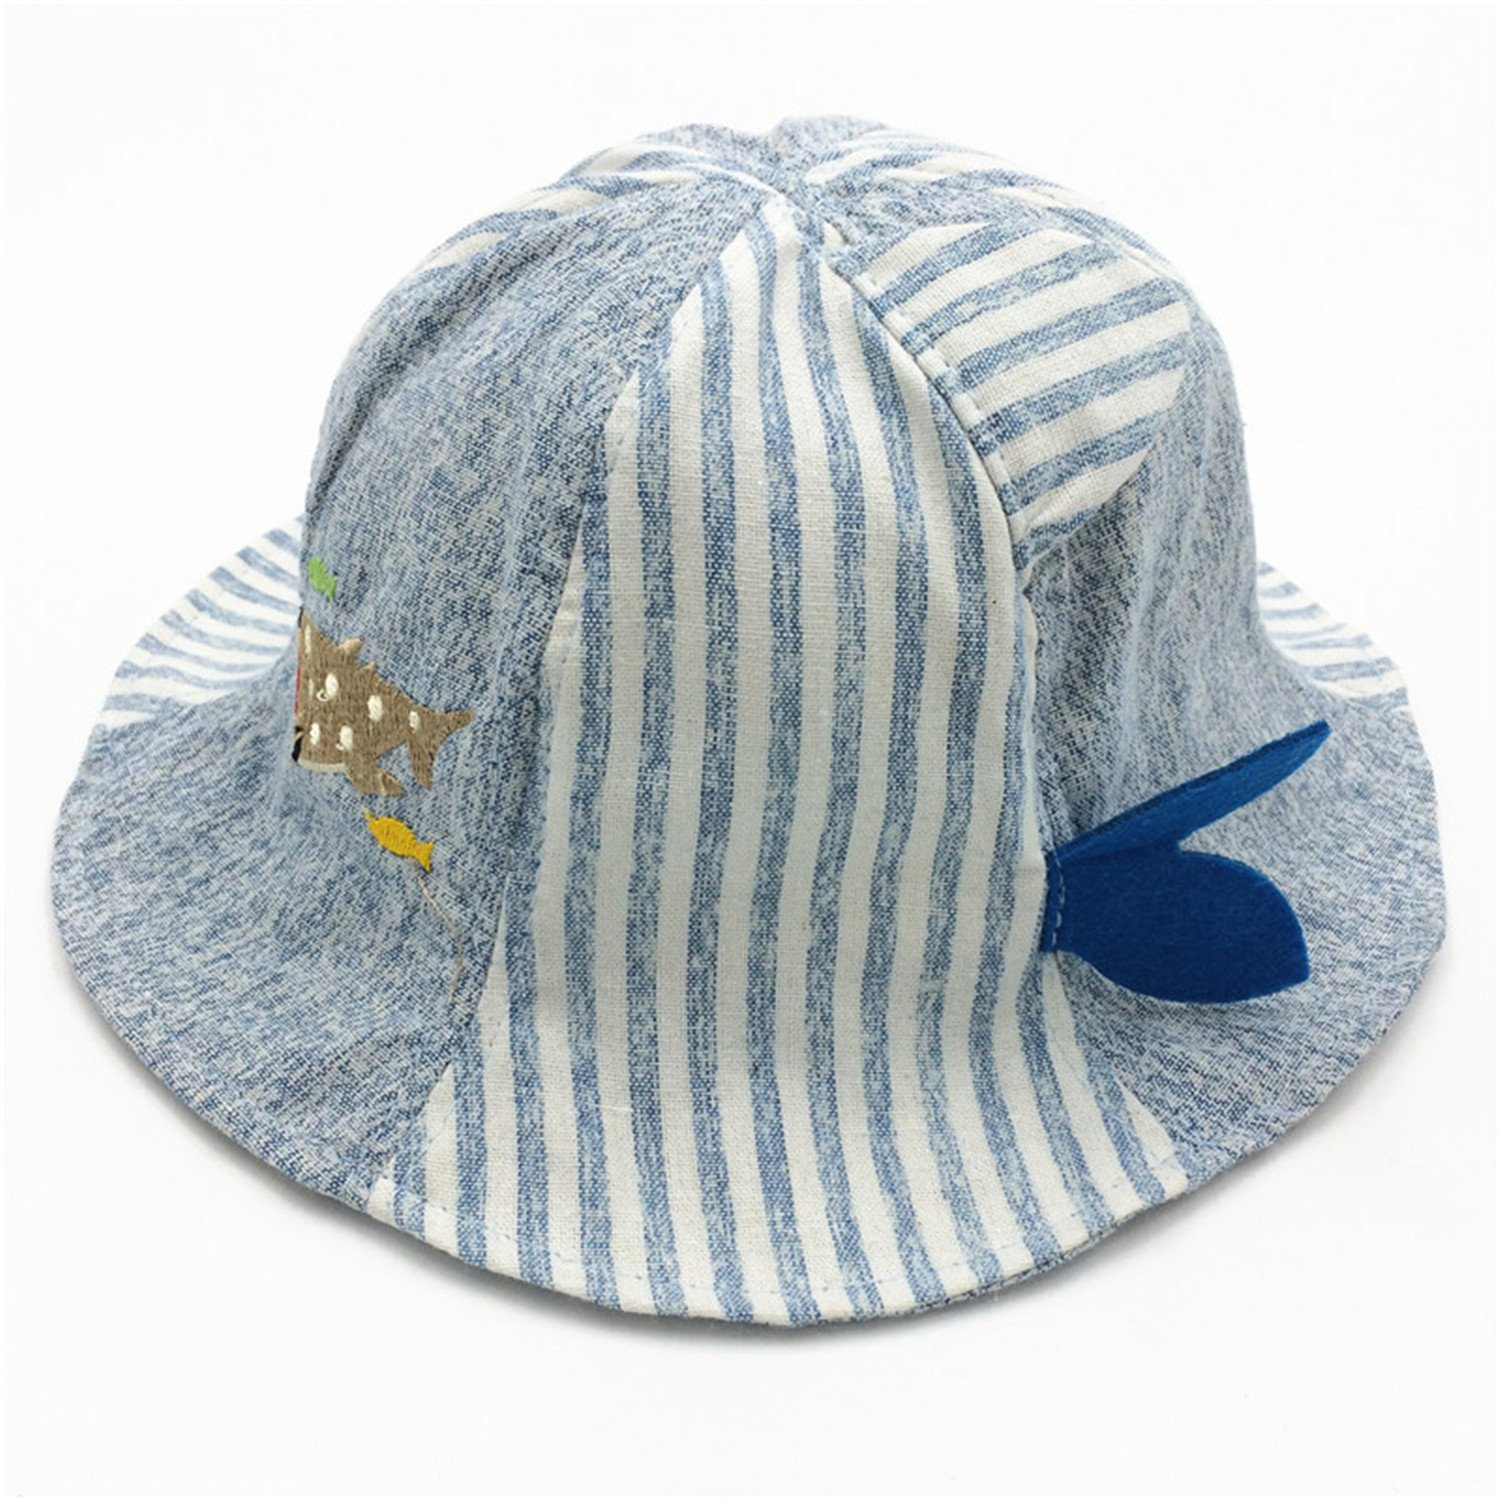 a08d24372ebdd New Spring Summer Baby Girls Sun Hat Cotton Baby Hat Kids Boys Child Caps  Alphabet Striped Baby Striped Fisherman Hat Outdoor Blue One Size at Amazon  ...